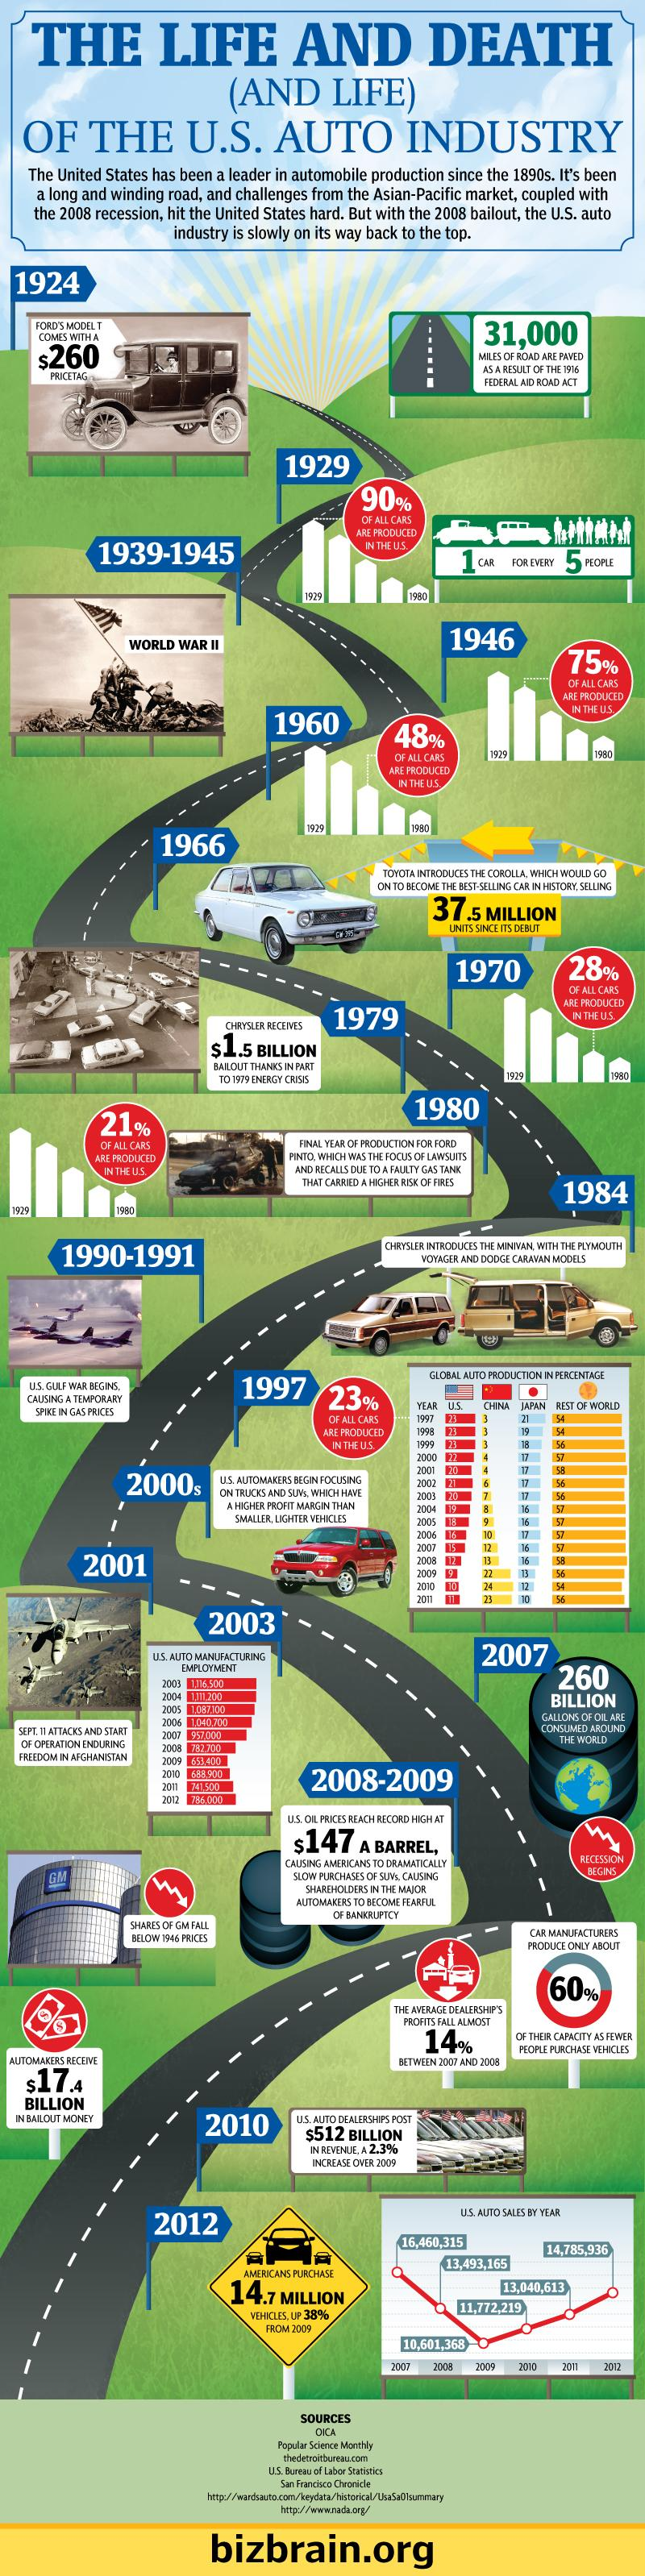 Timeline of the U.S. auto industry.